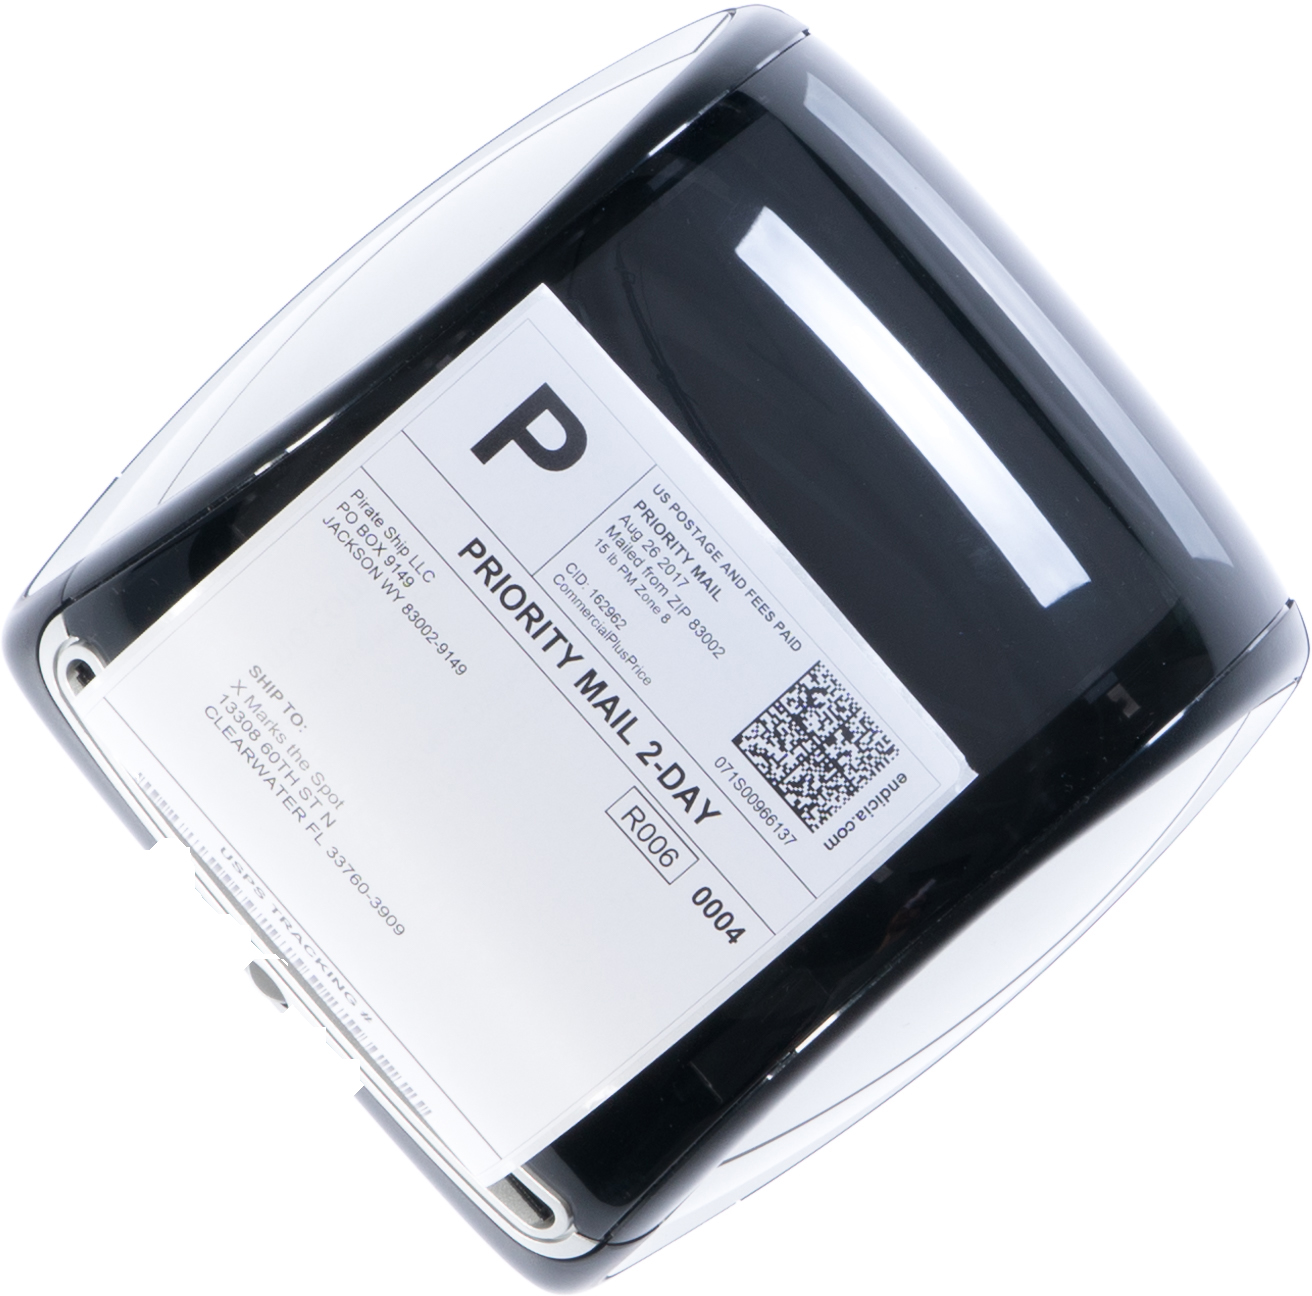 Dymo 4XL shipping label printer